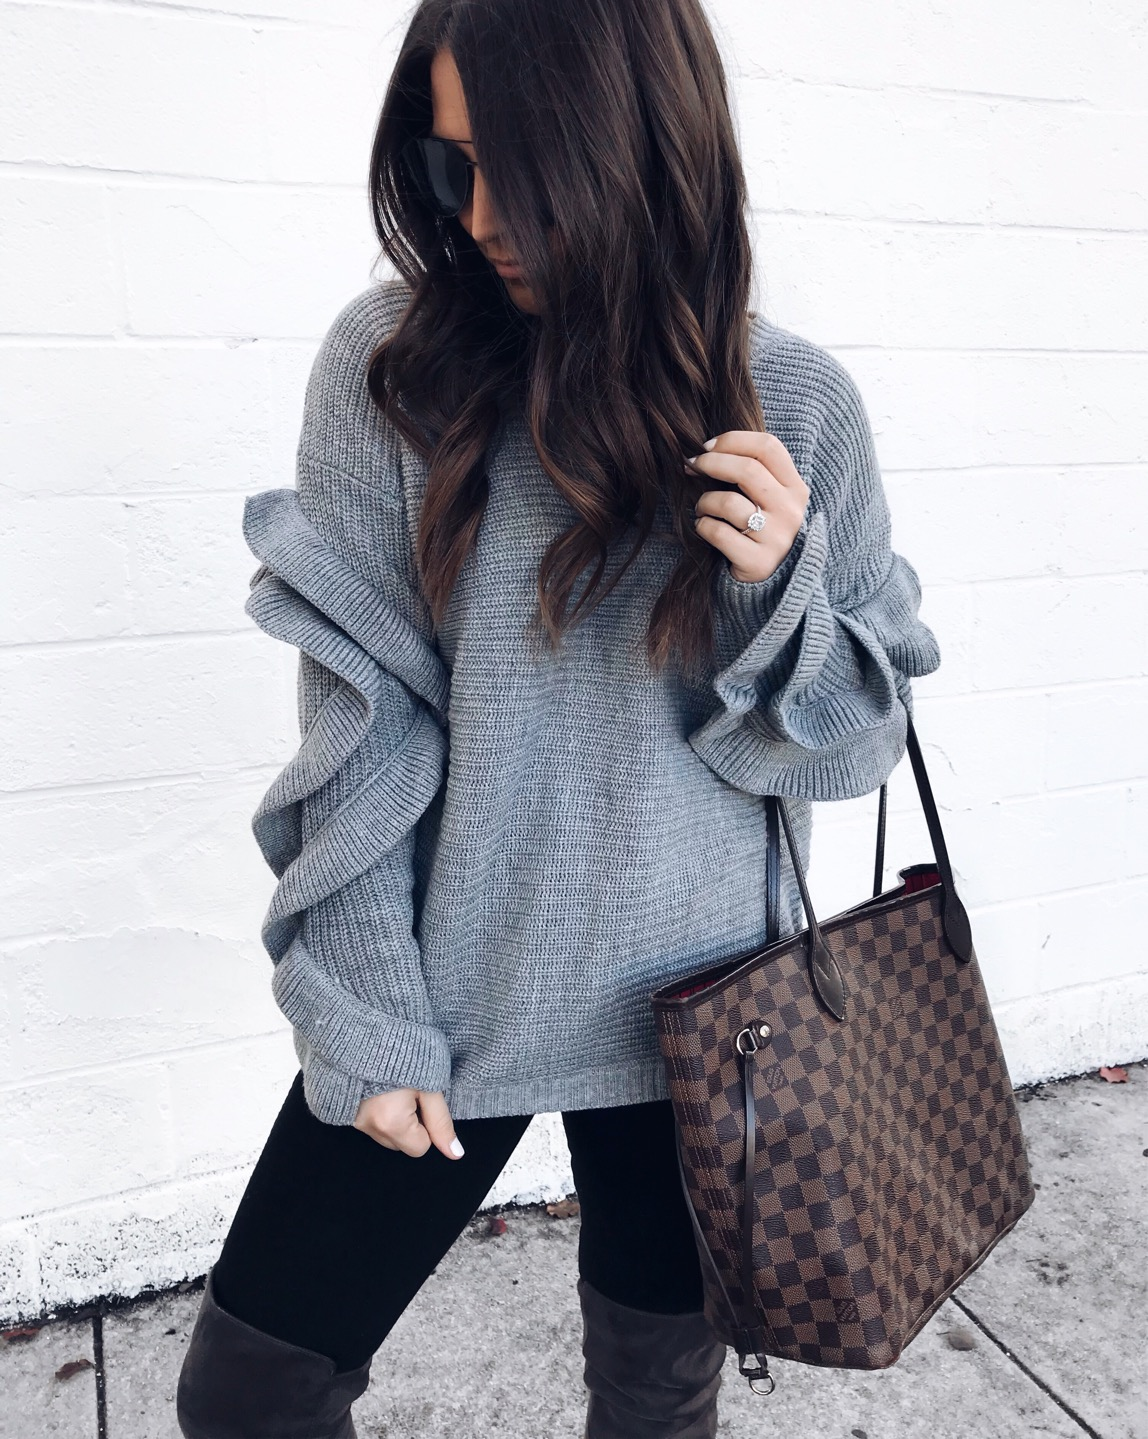 fall fashion, fall outfit idea, fall outfit inspiration, ruffle sleeve sweater, outfit of the day